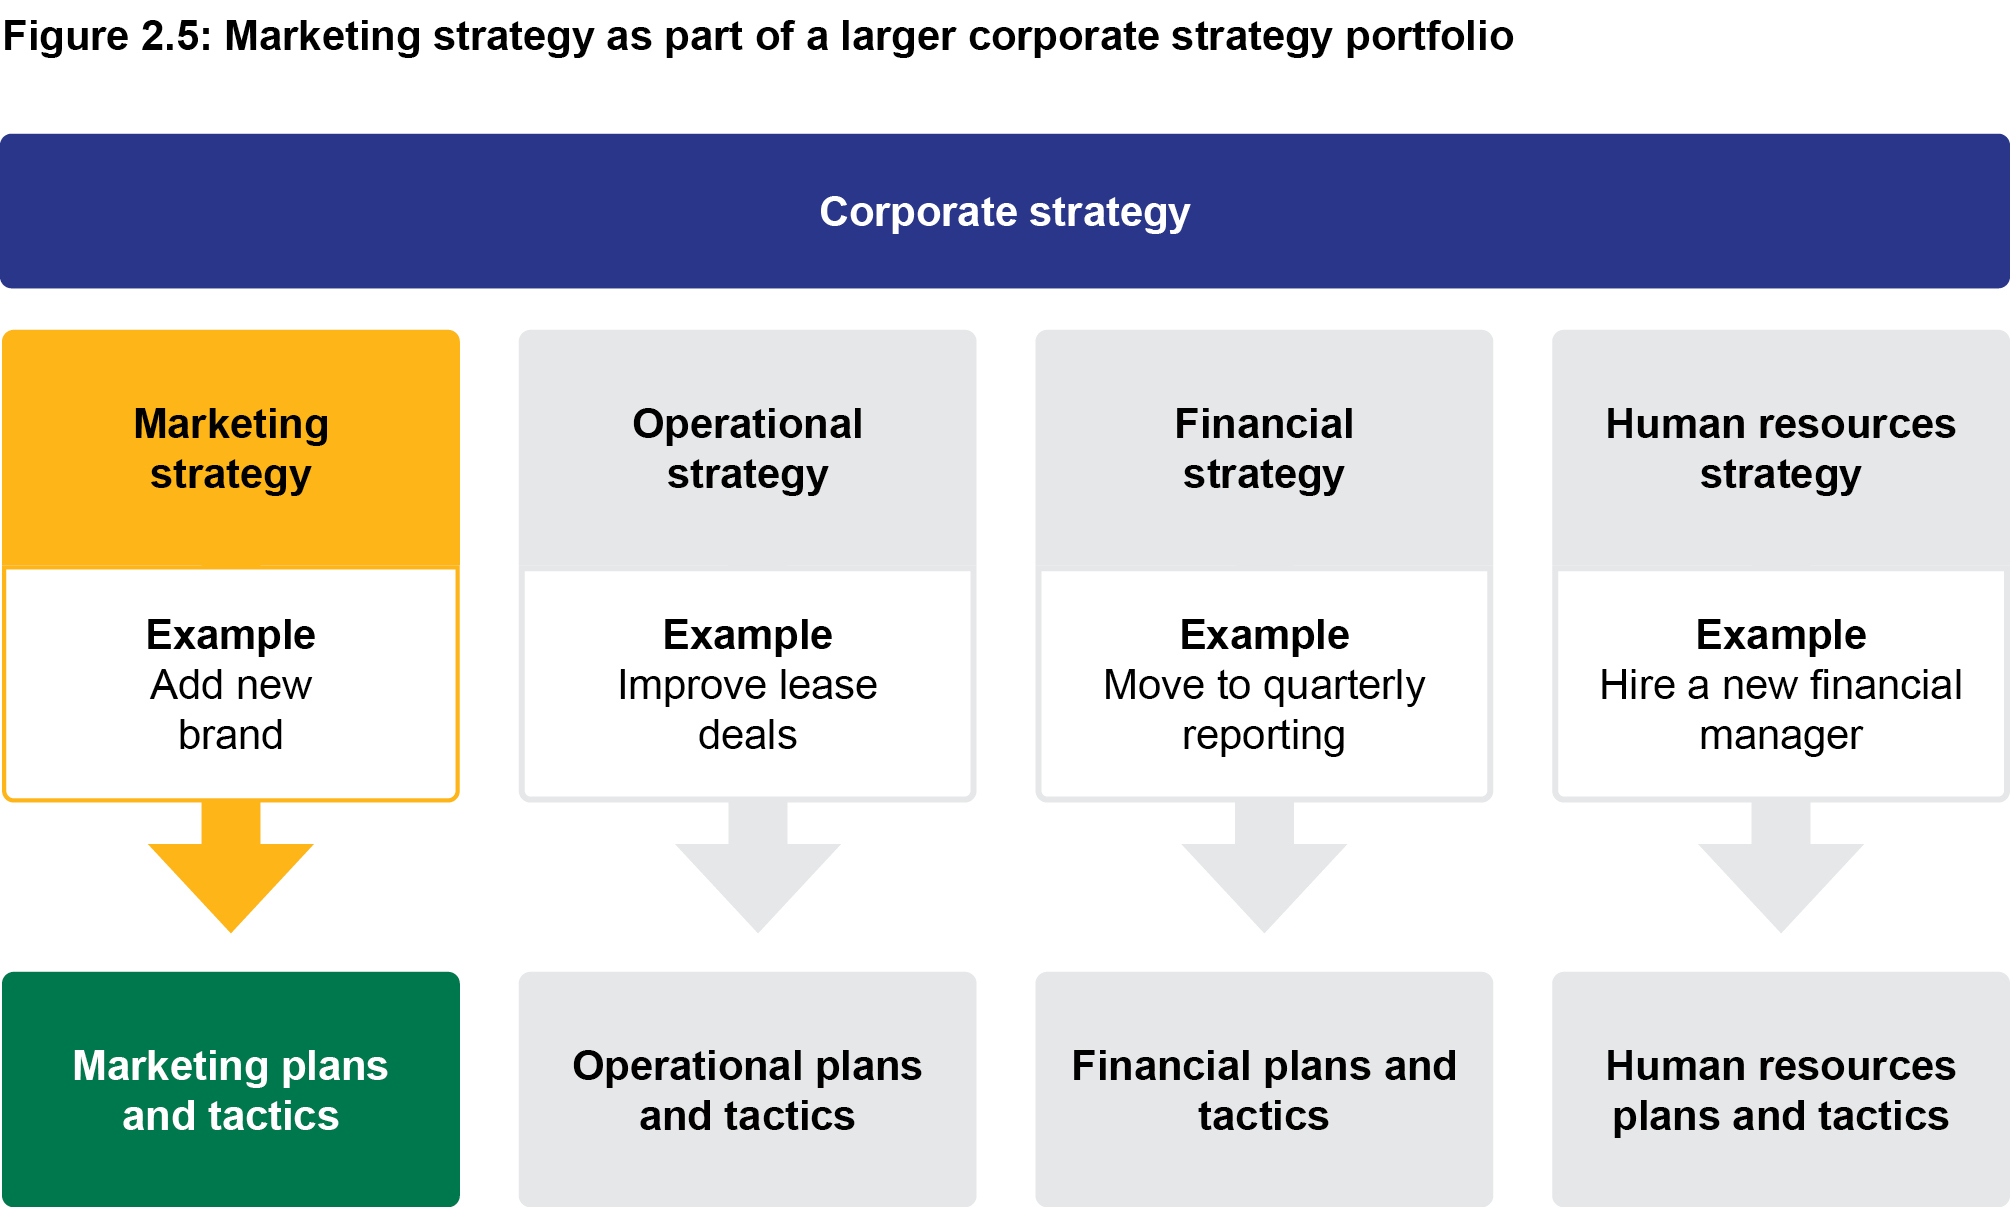 Figure 2.5: Marketing strategy as part of a larger corporate strategy portfolio